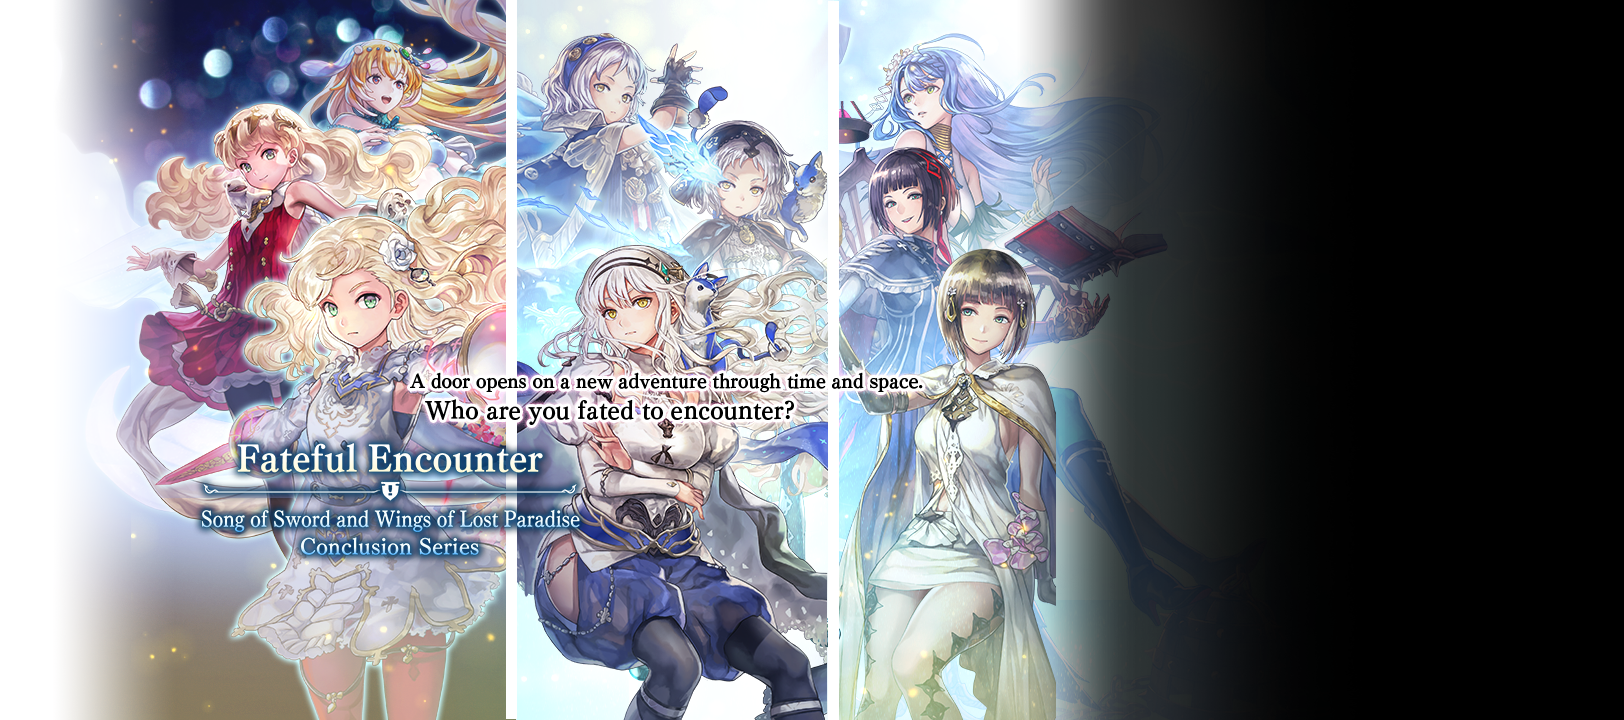 Fateful Encounter (2.7.9) Song of Sword and Wings of Lost Paradise Conclusion Series.png